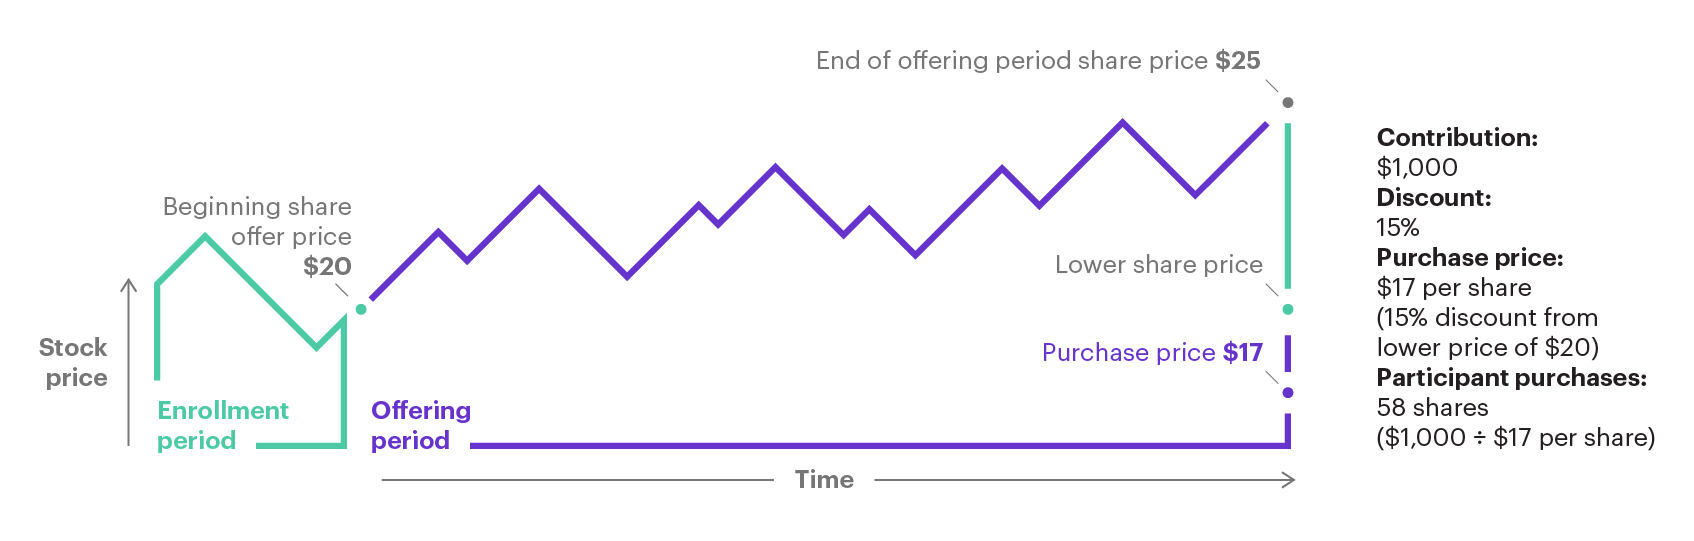 Understanding employee stock purchase plans | E*TRADE